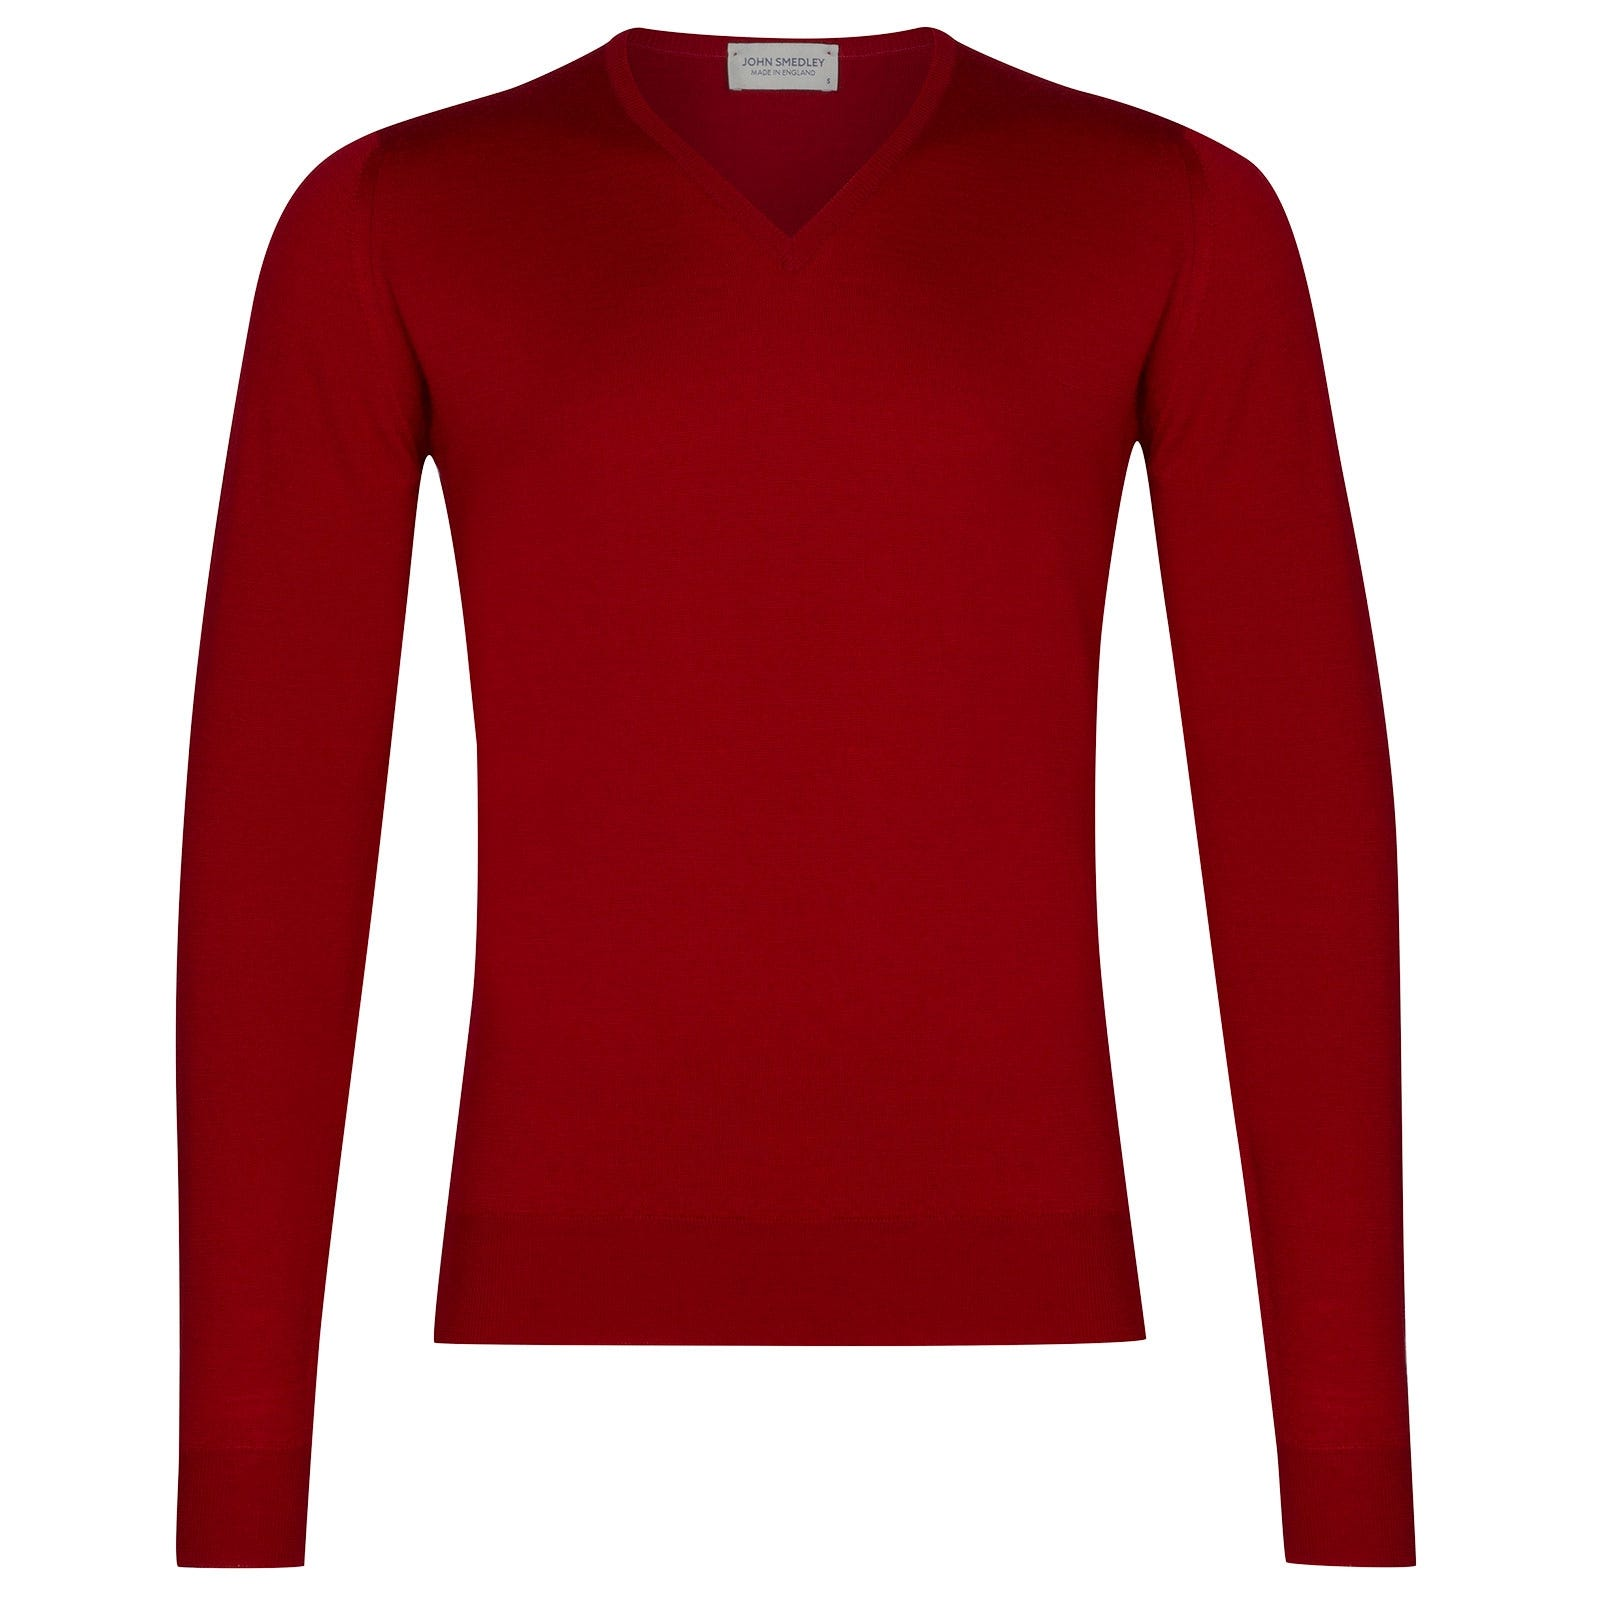 John Smedley Blenheim Merino Wool Pullover in Dandy Red-XXL